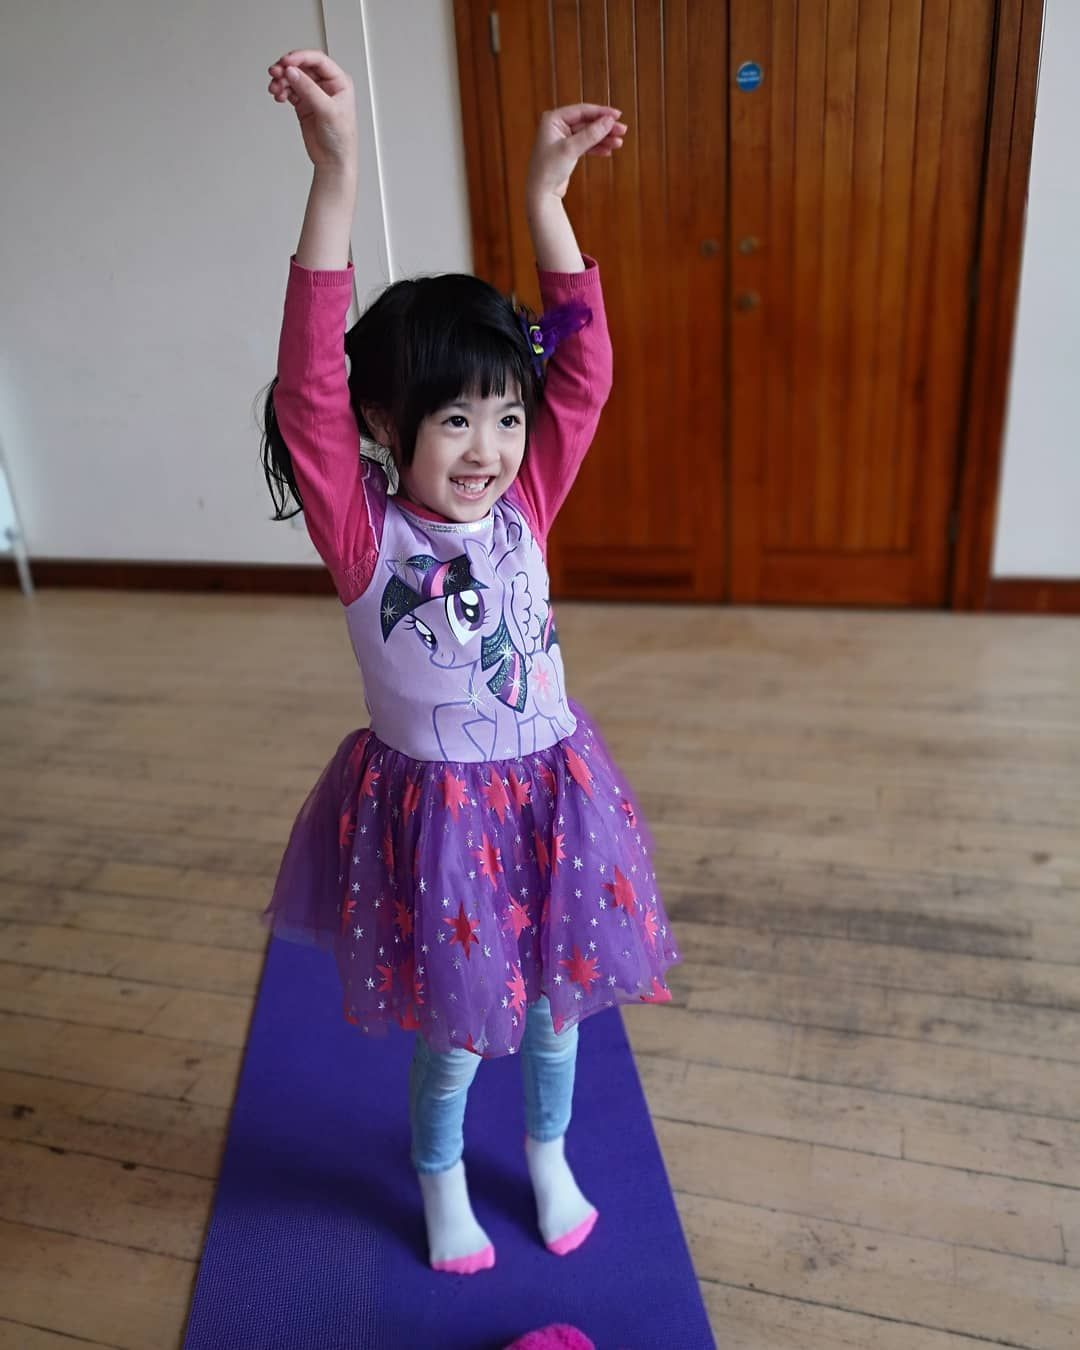 G Is For Giraffe Tadasana Variation In Giraffe Pose Our Little Yogis Start Off In Mountain Pose With Their Hands To Heart Centre Before Rising Up Onto